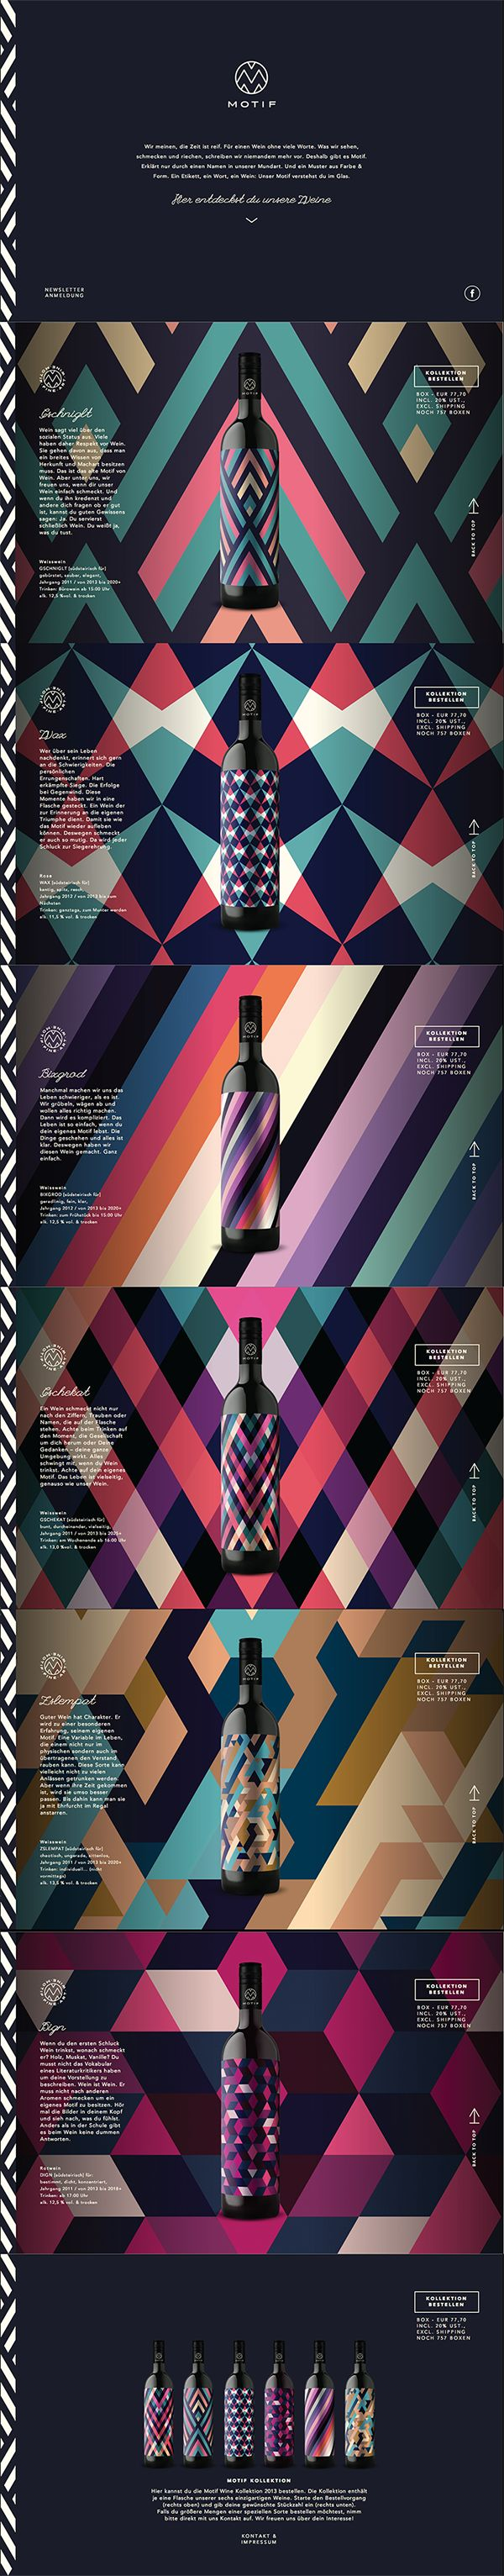 Vertical scroll, wine website